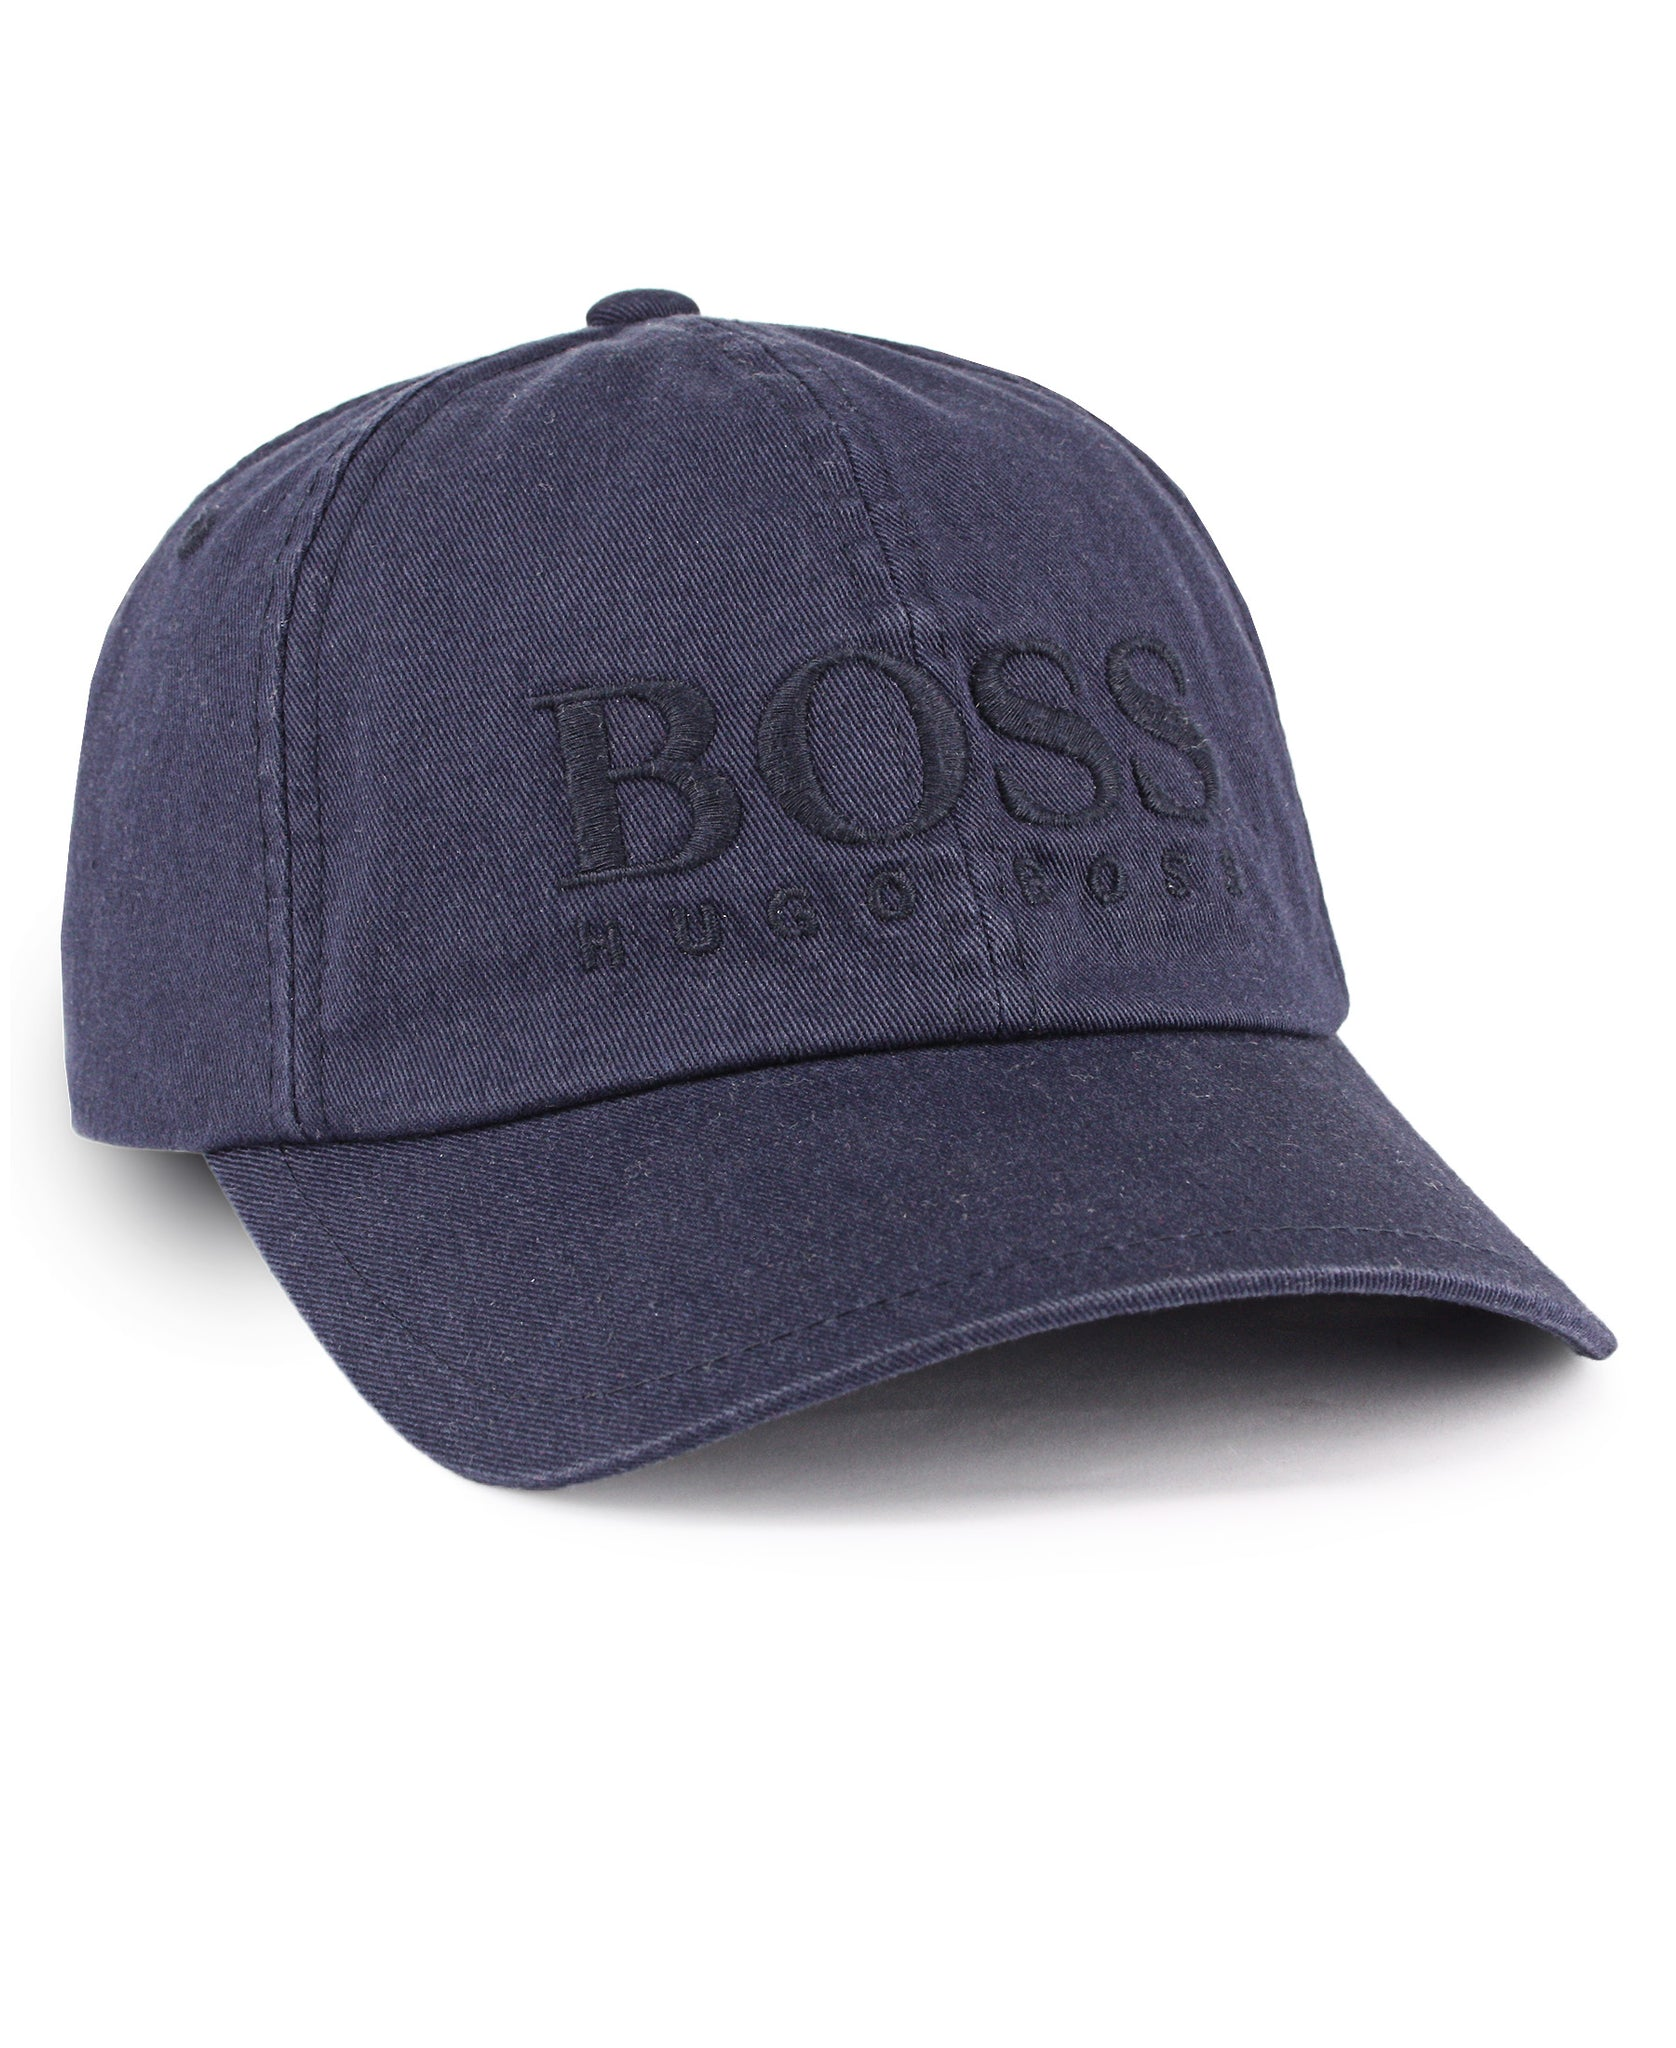 Hugo Boss Cap - Navy